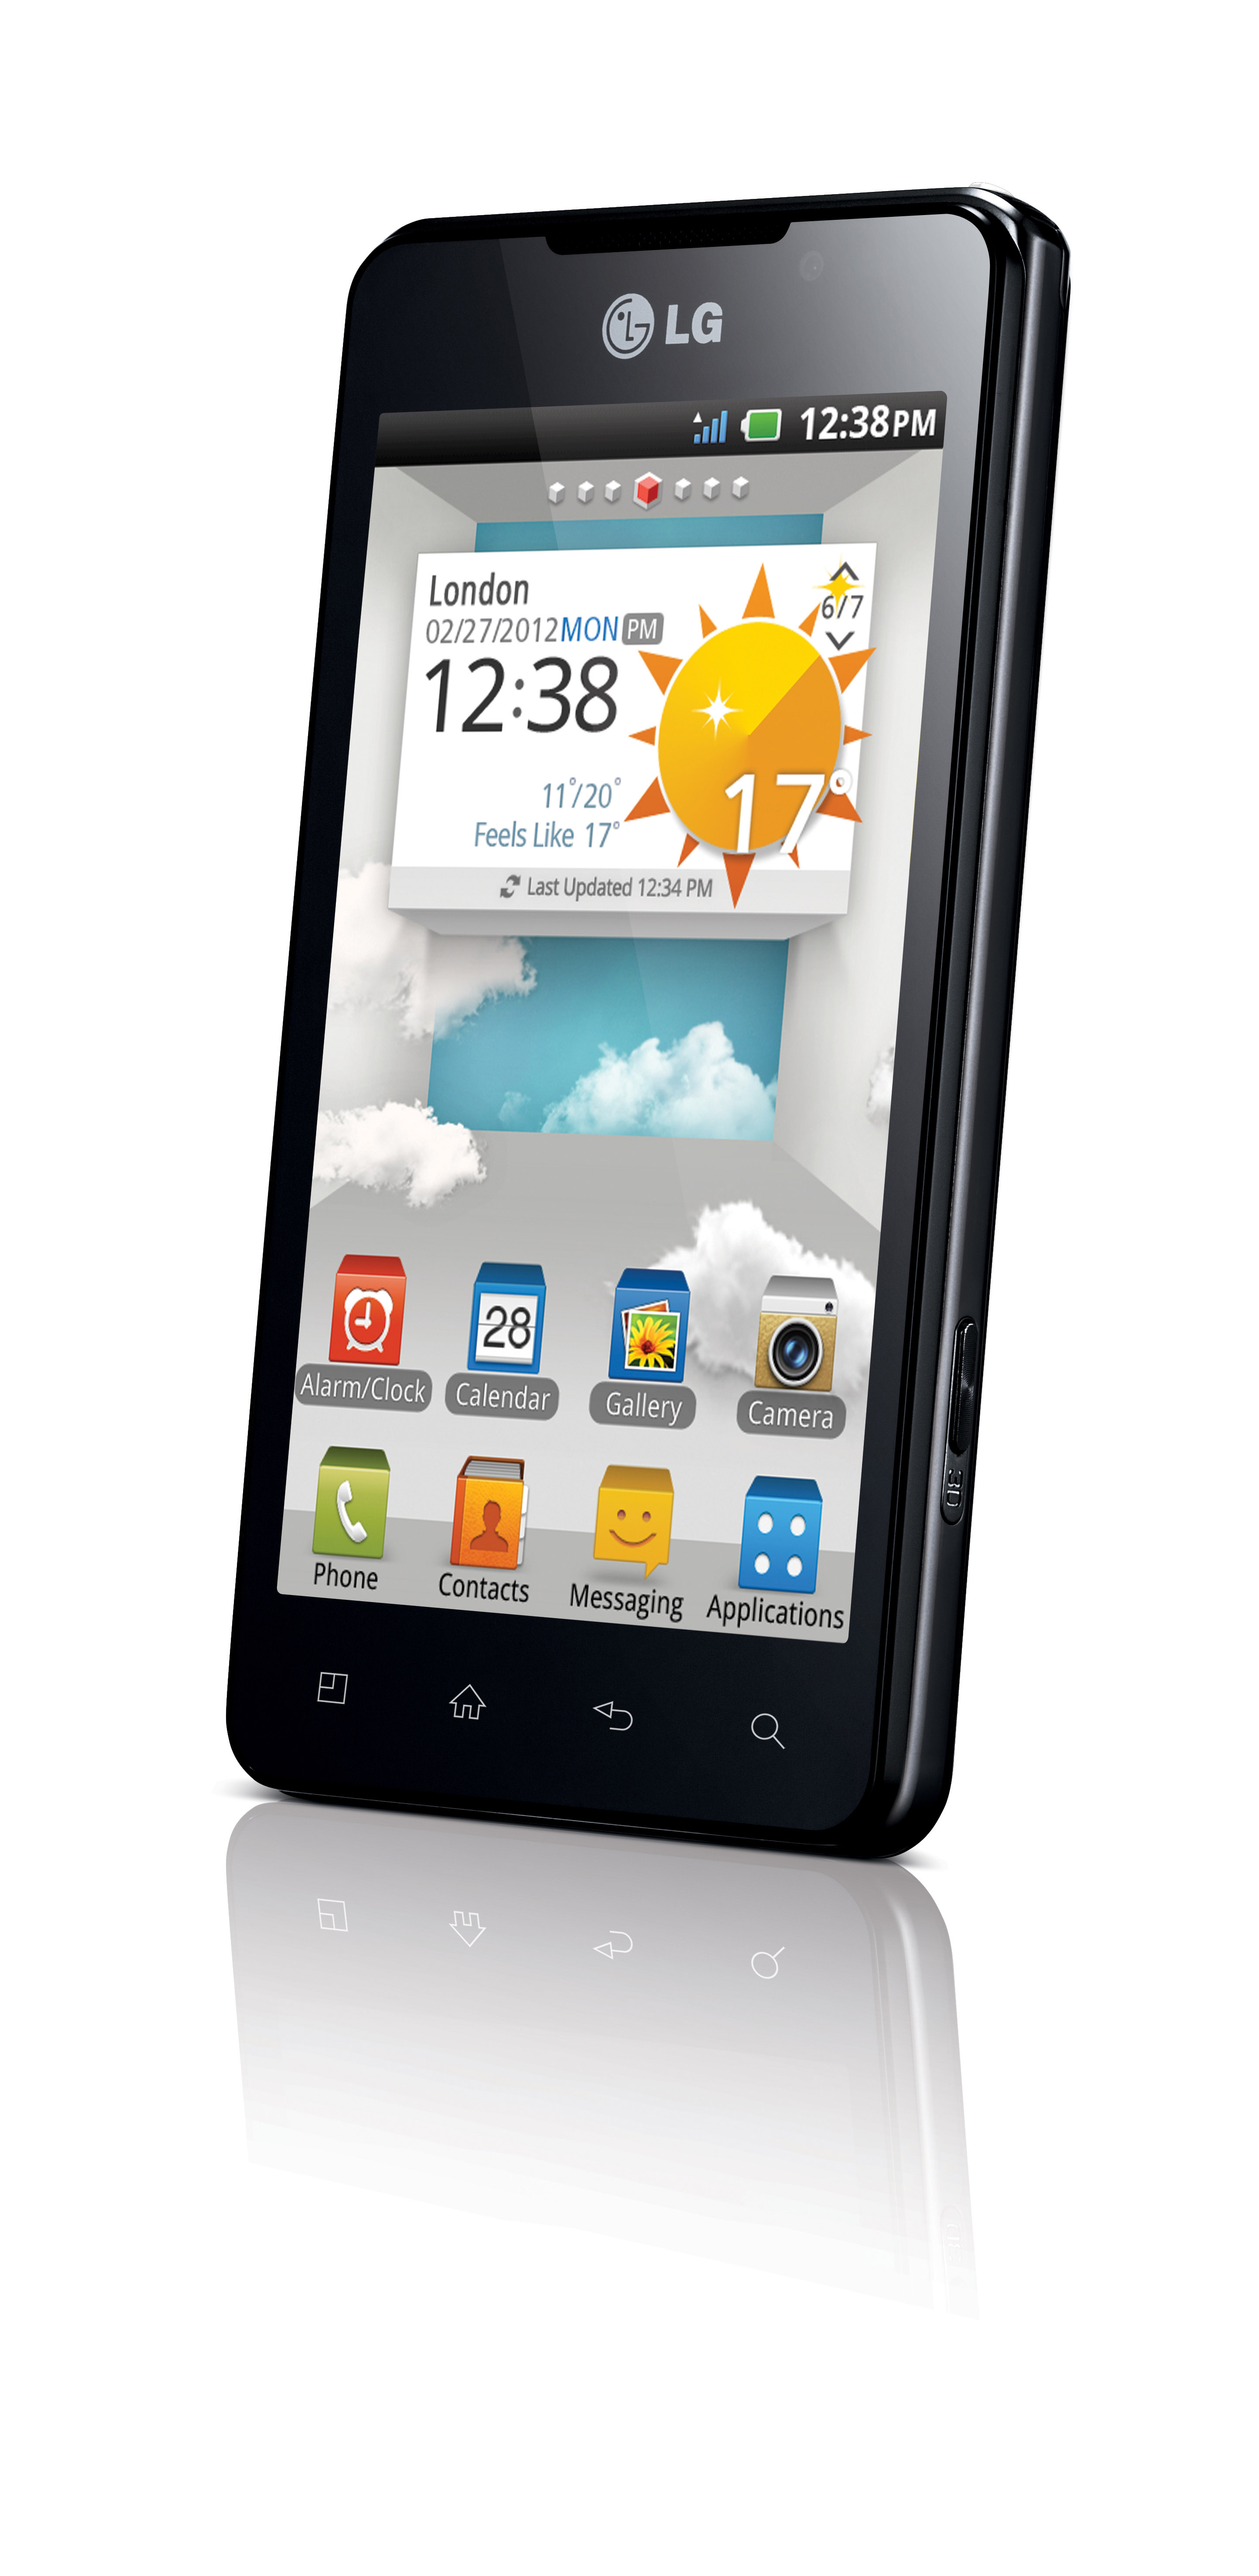 LG LAUNCHES SECOND-GENERATION 3D SMARTPHONE IN EUROPE